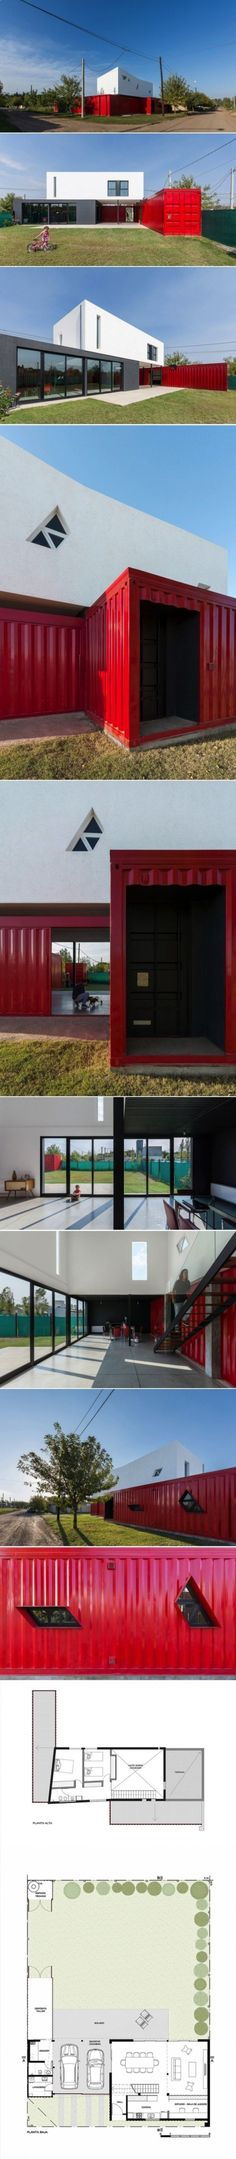 Container House - A Container Home With Personality - Who Else Wants Simple Step-By-Step Plans To Design And Build A Container Home From Scratch? #ShippingContainerHomePlans